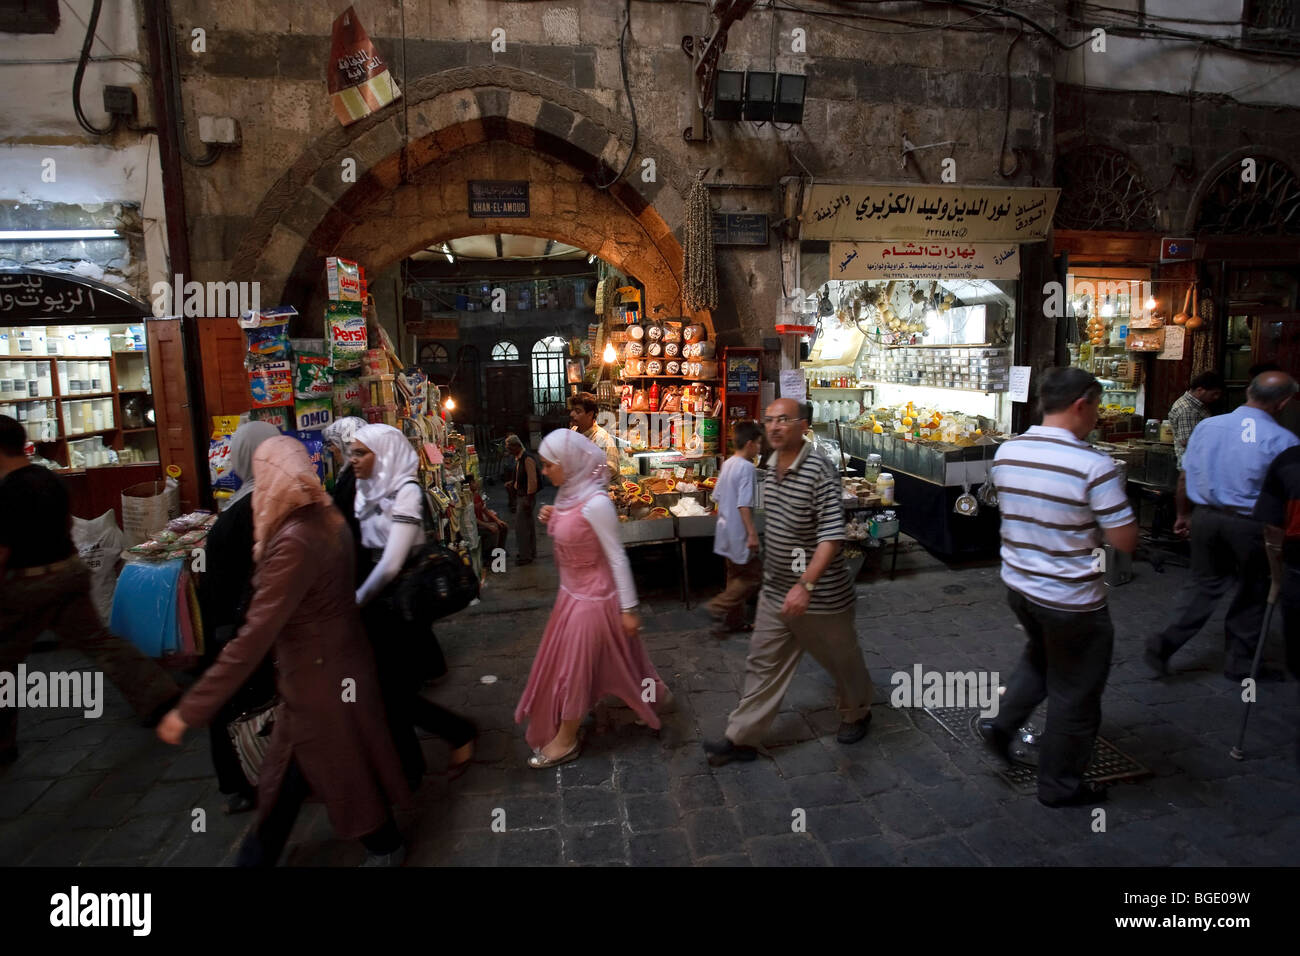 Syria, Damascus, Old, Town, Spice Souq - Stock Image